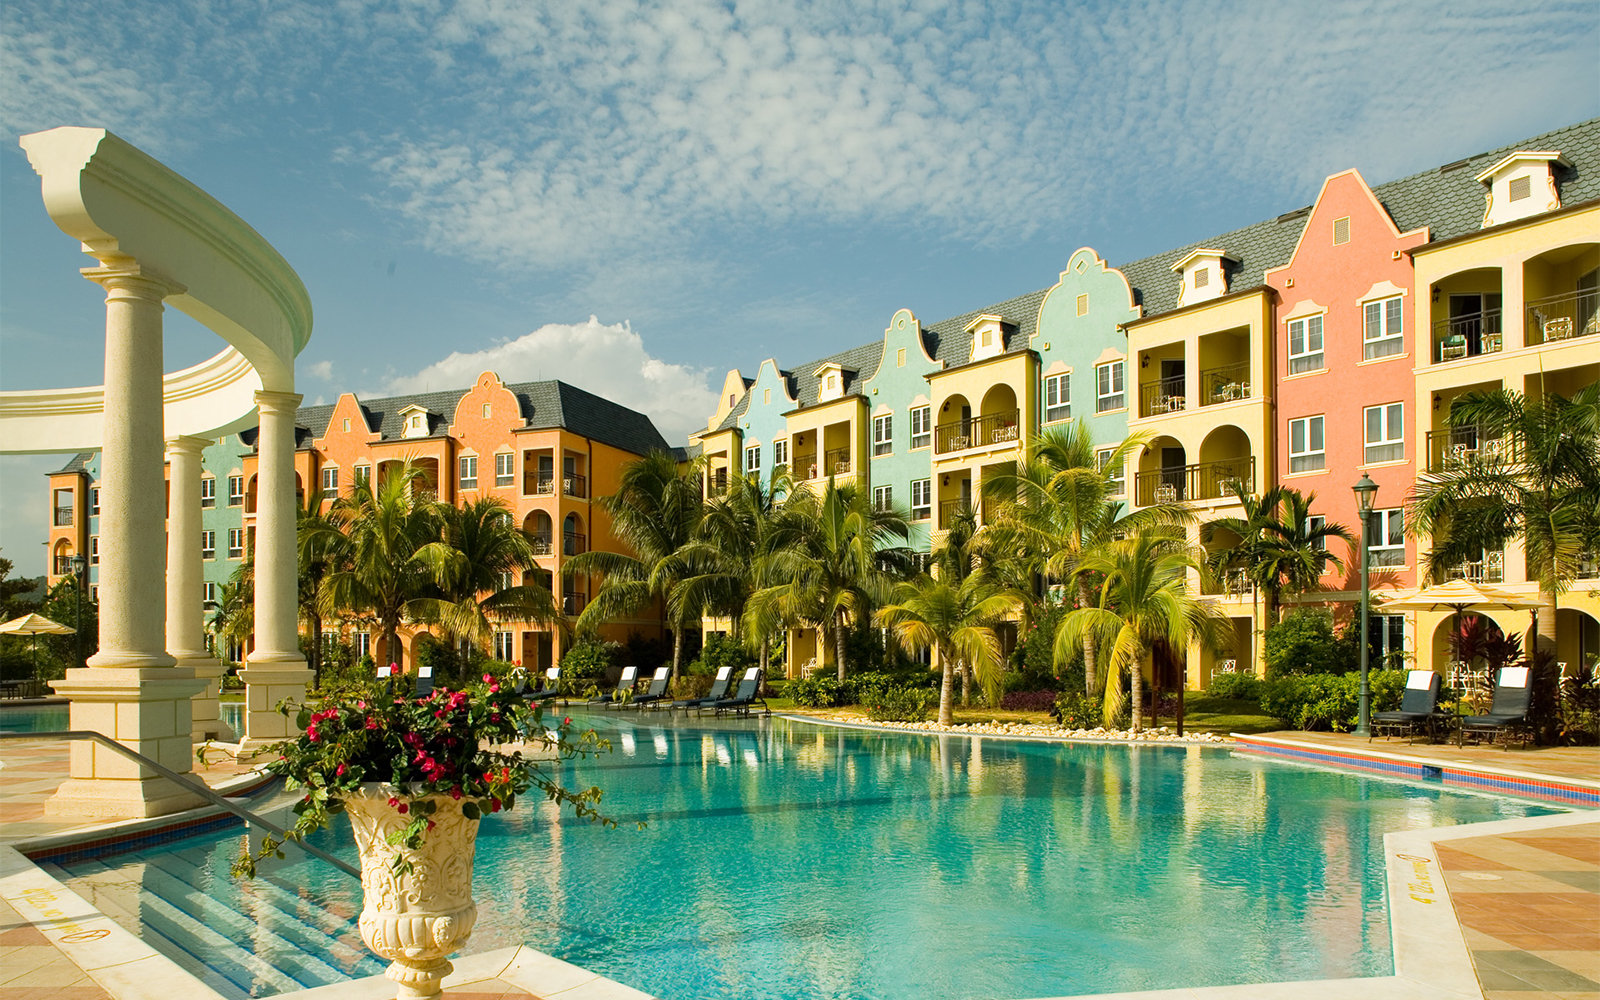 No.1: Sandals Whitehouse European Village & Spa, Jamaica